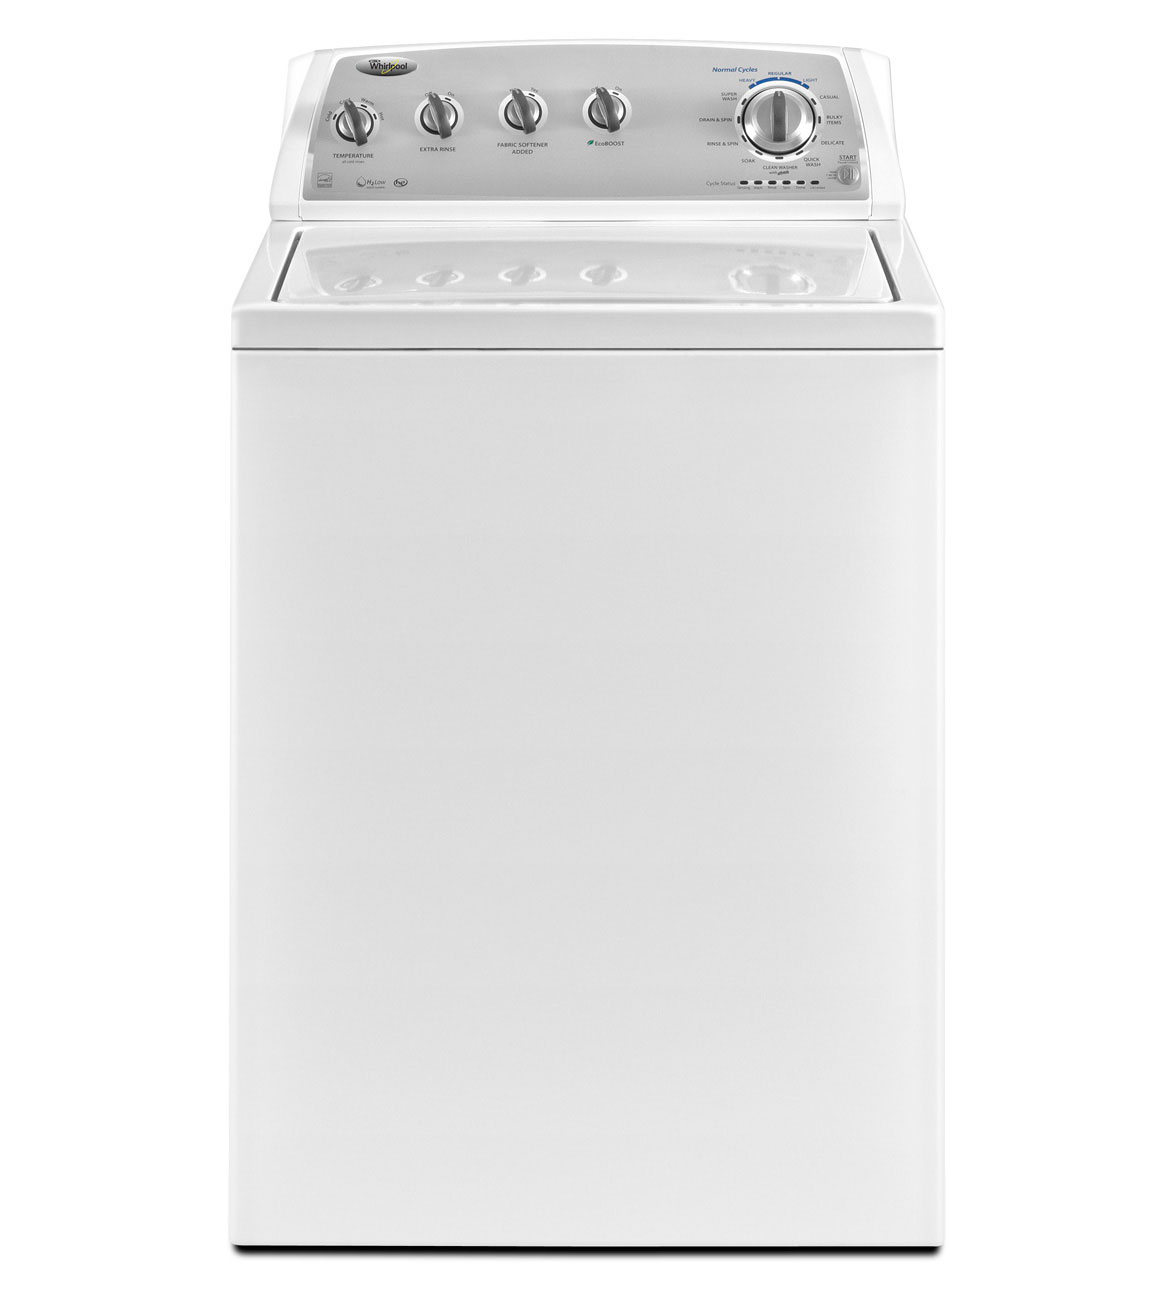 Review of Whirlpool 3.6 cu ft High-Efficiency Top-Load Washe ...